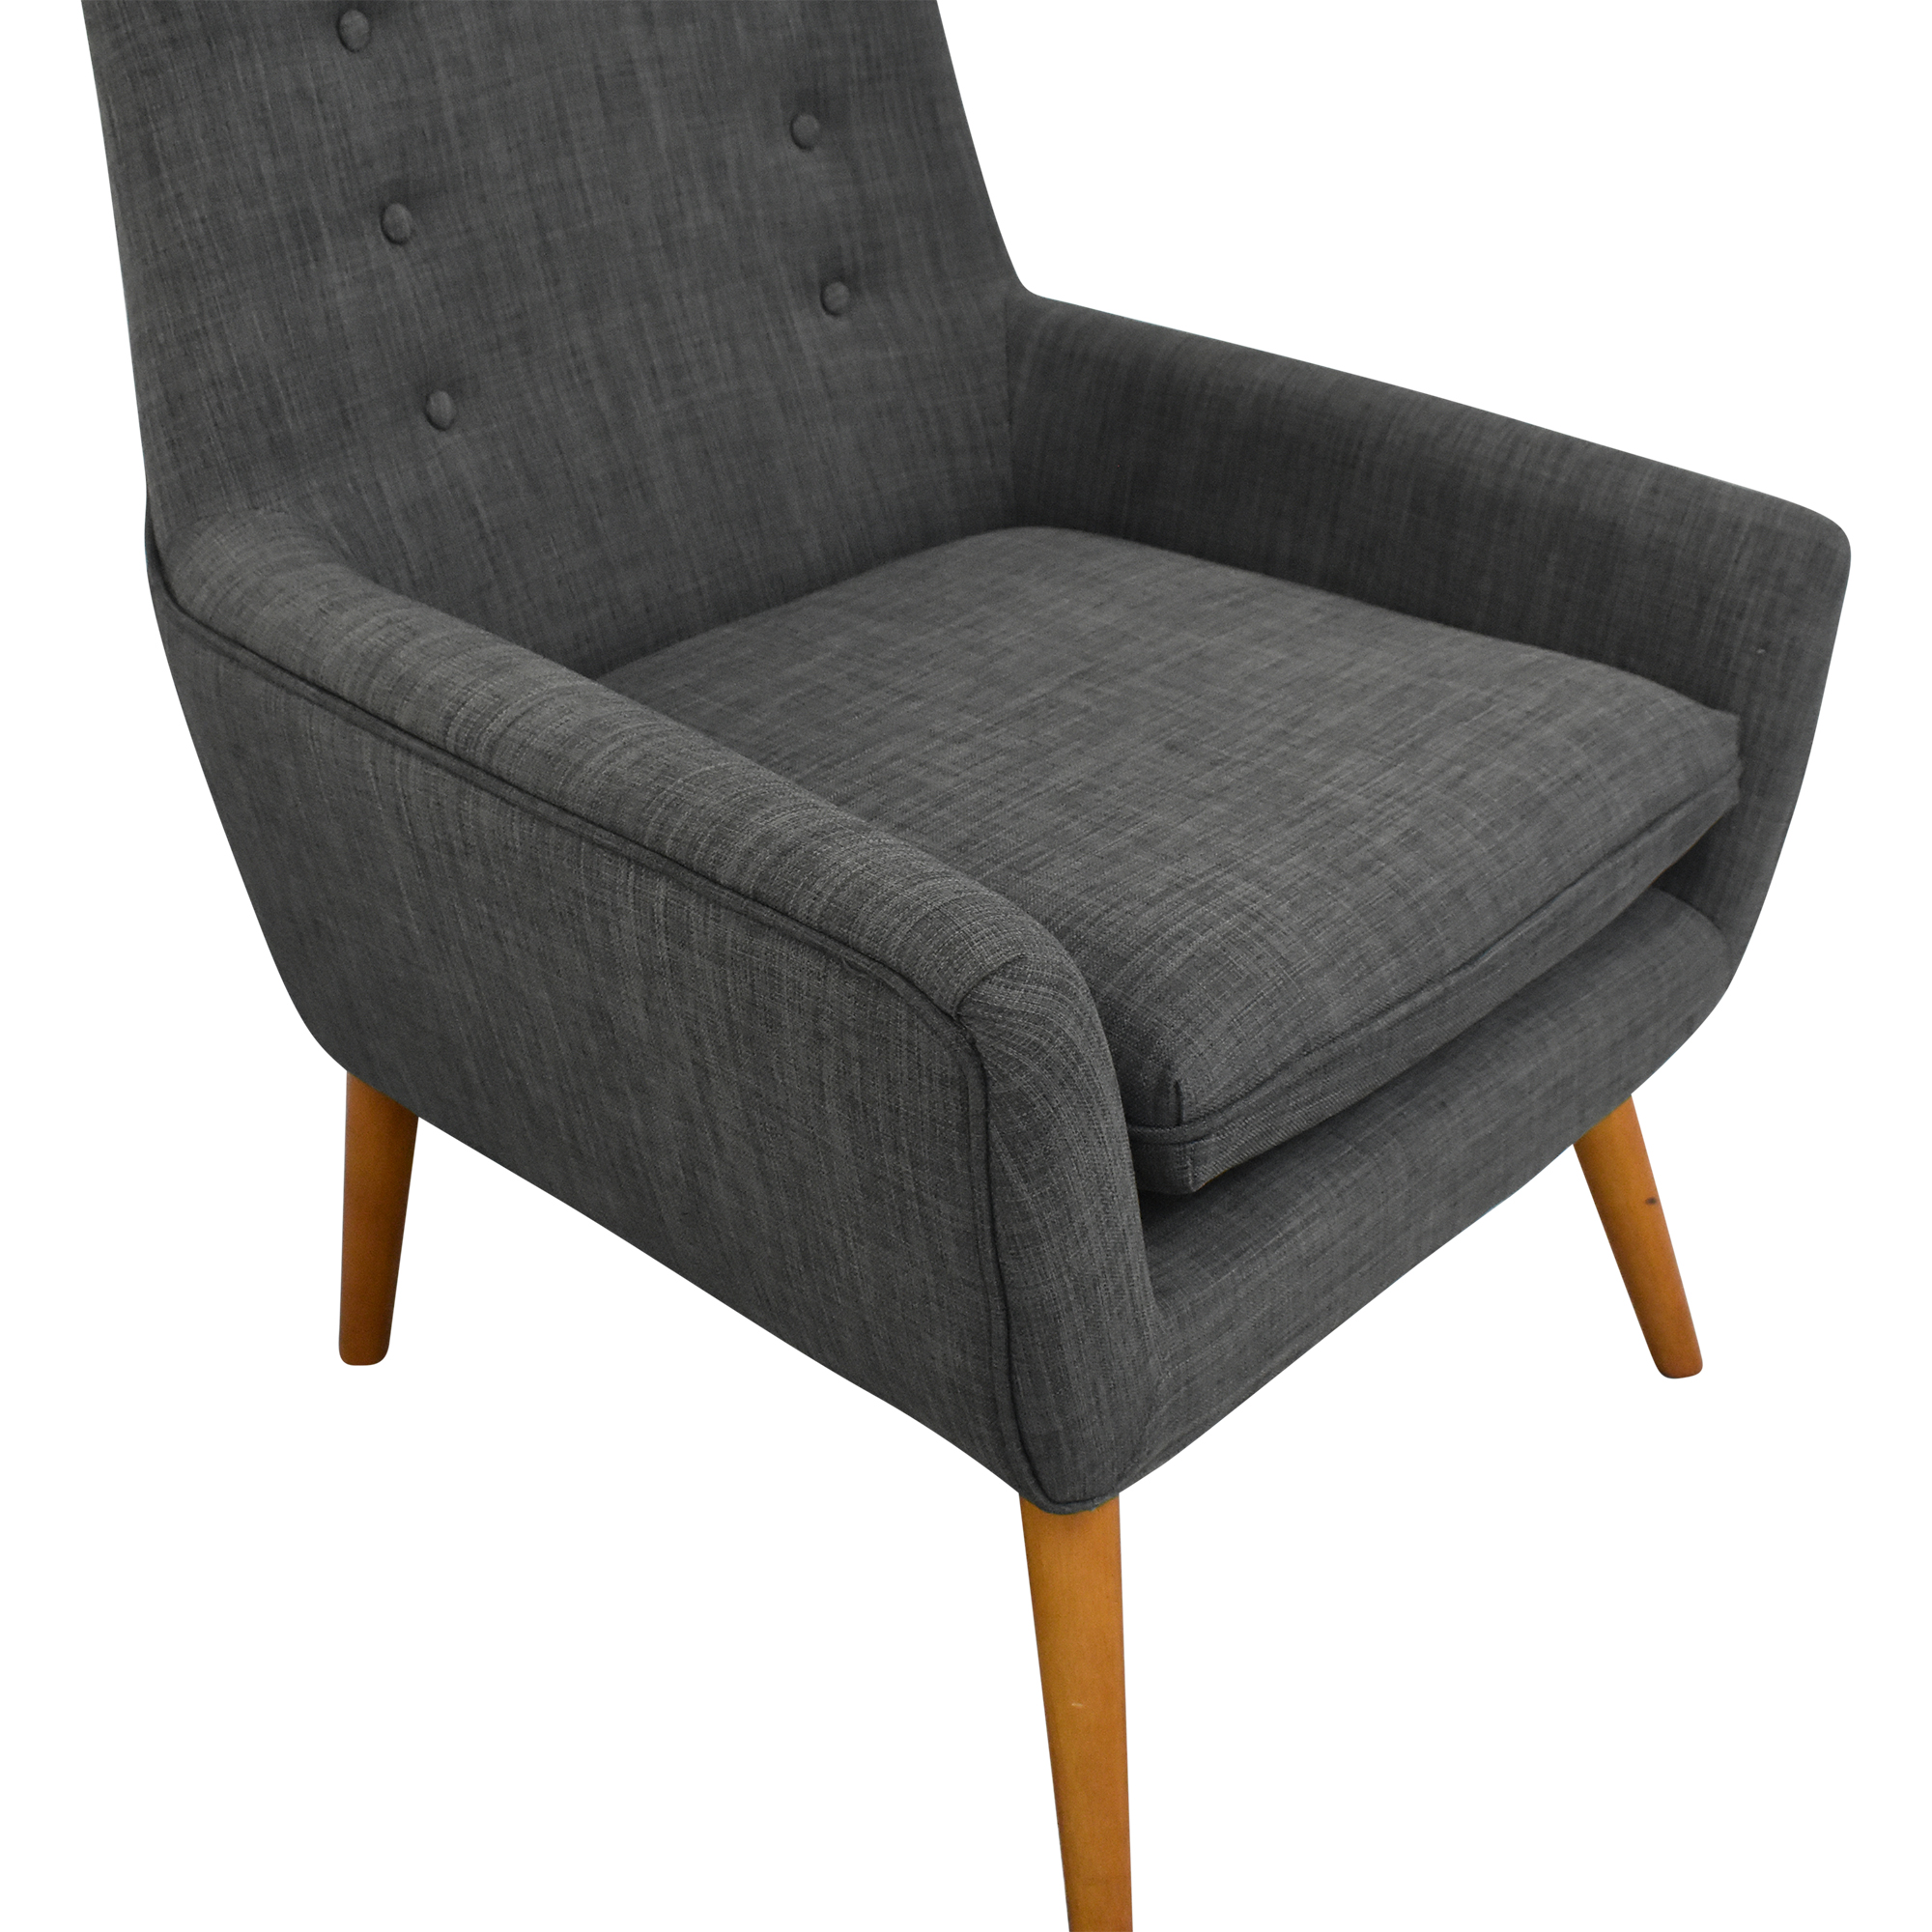 shop Adesso Modern Accent Chair Adesso Accent Chairs